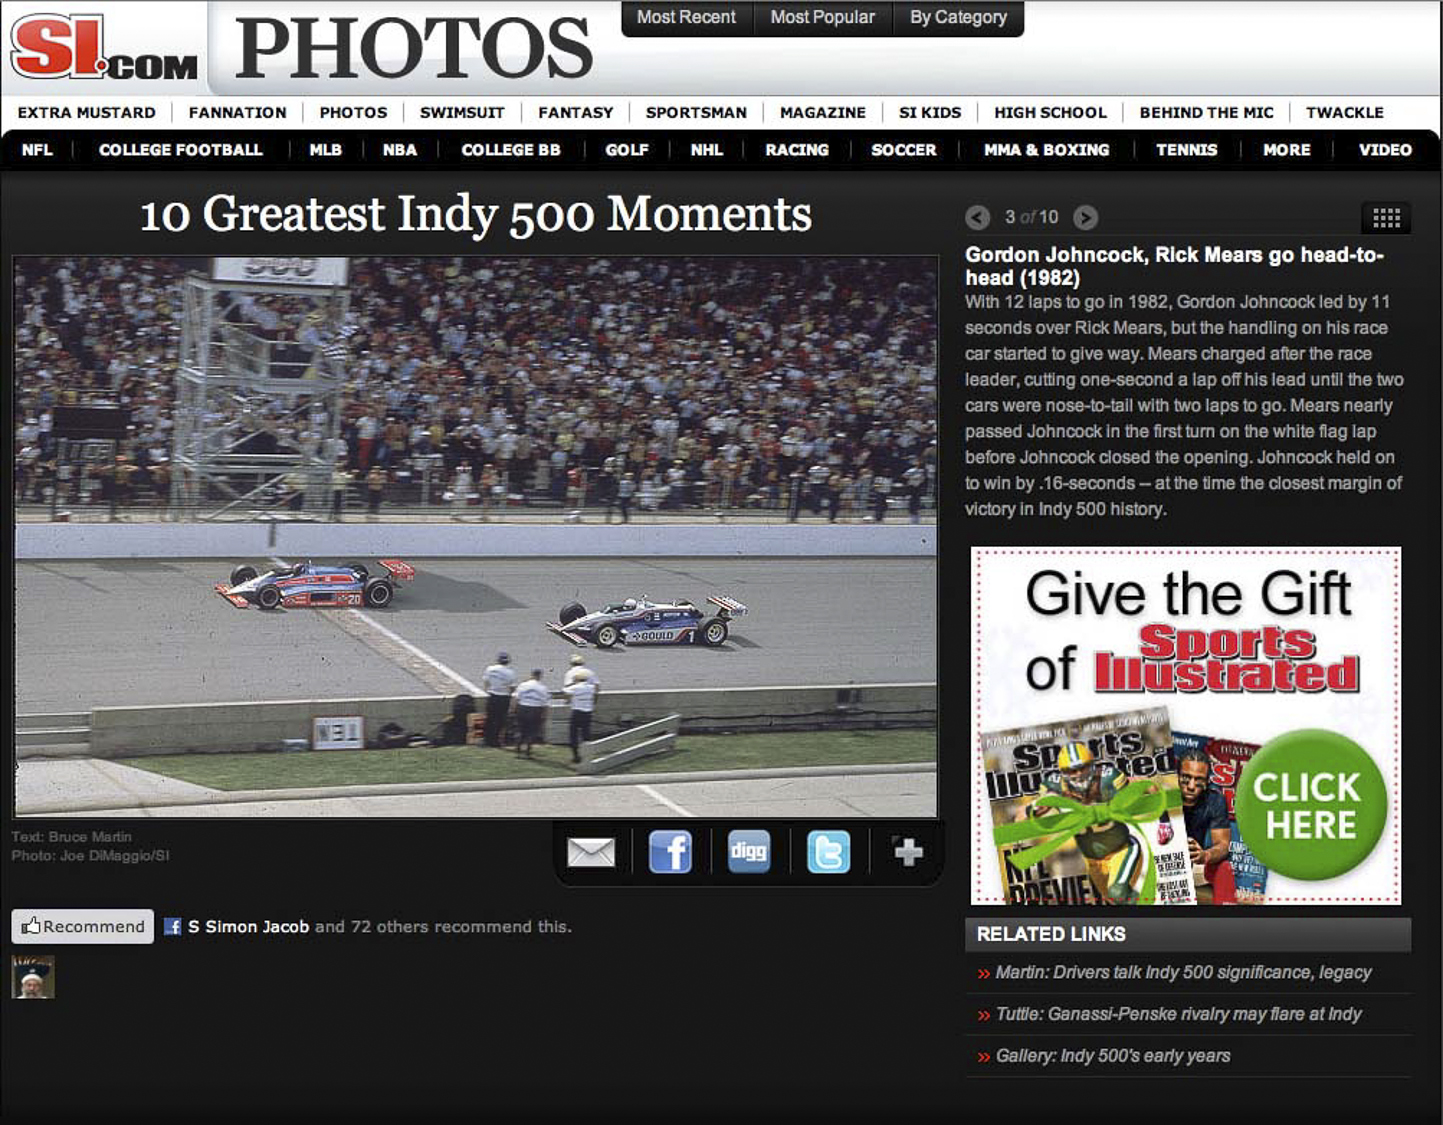 S.I. Indy Third Greatest Photograph in 100 yearsR